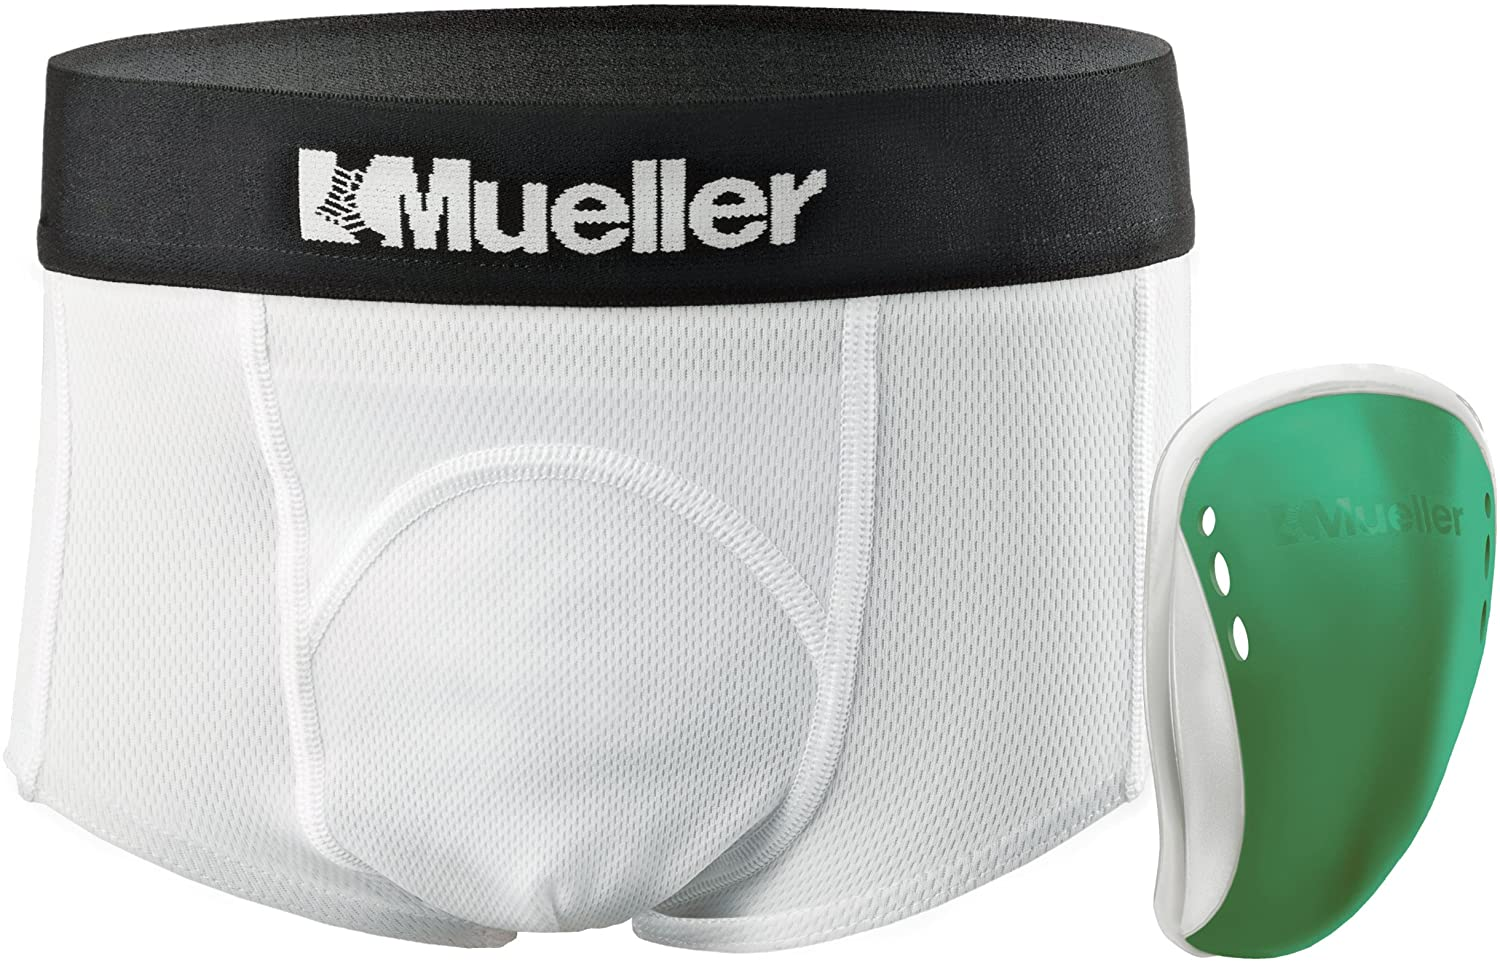 Mueller Athletic Support Brief with Flex Shield Cup, White/Green, Peewee Large